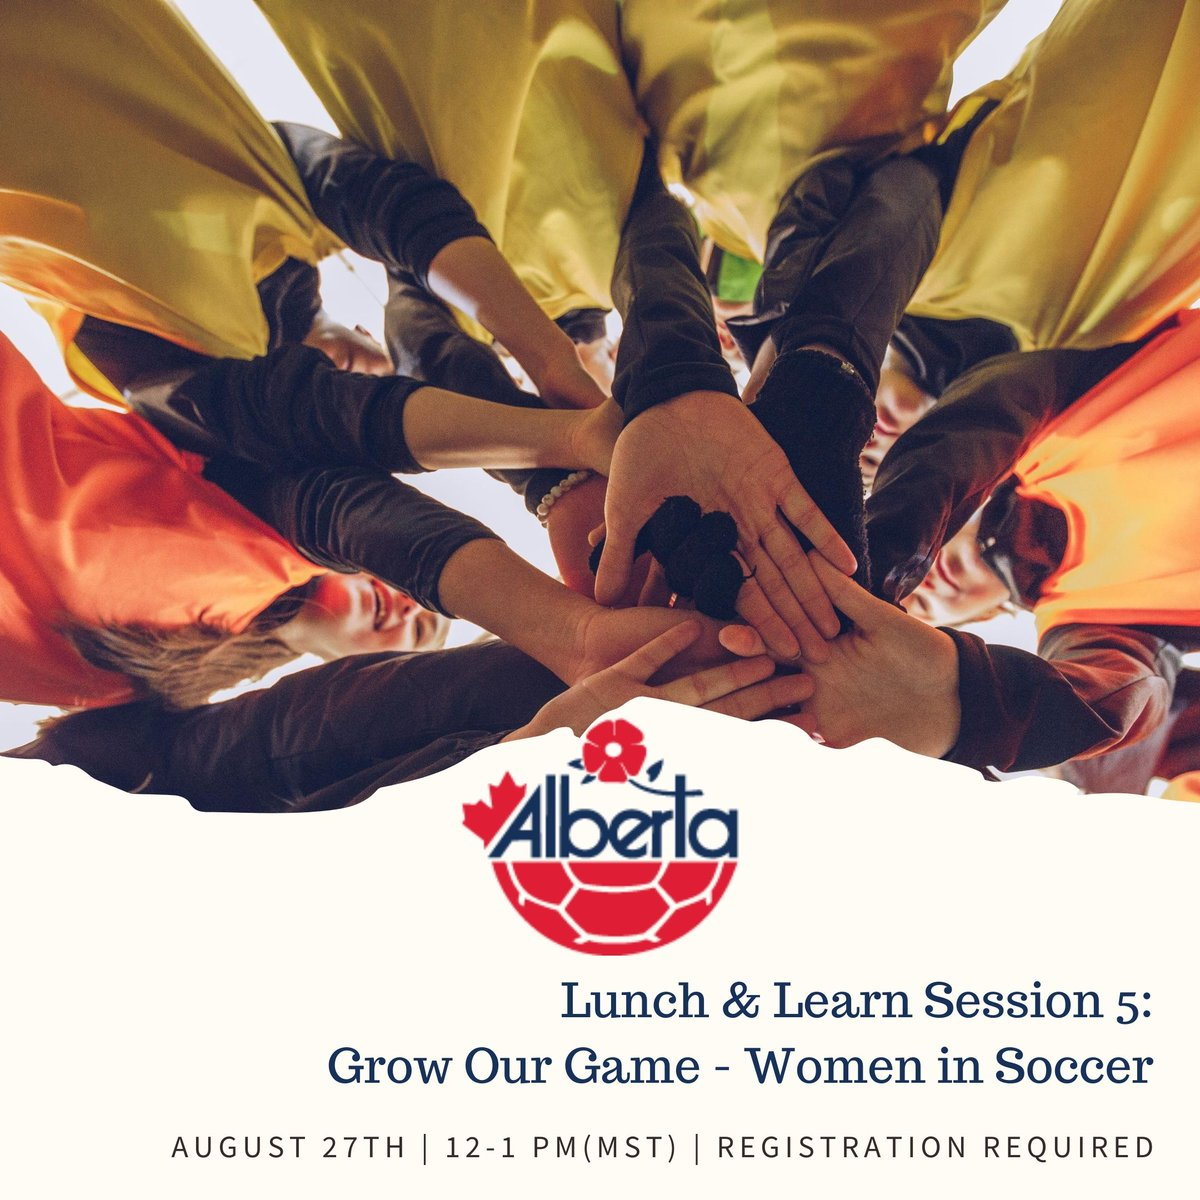 You are invited to join our technical team this Thursday (12-1pm MST) for their final Lunch & Learn of the Summer.  Matt Thomas will be chatting with Katie Collar on how to grow the womens game. Go to the link to register  https://t.co/W2zVUlfeJf https://t.co/bswl6lyxlP